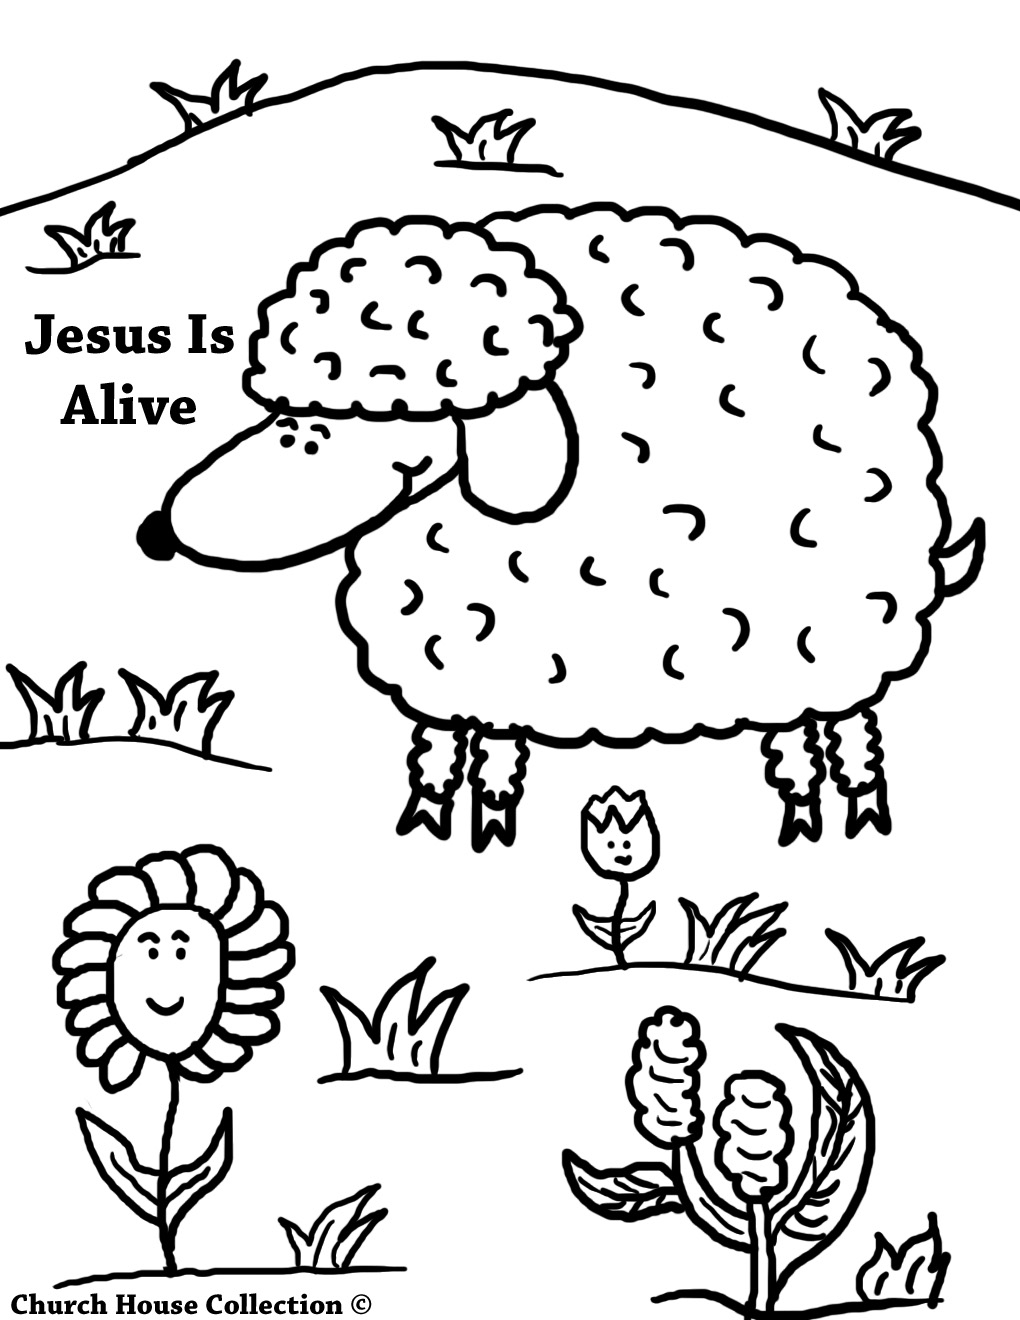 Jesus Is Alive Easter Coloring Pages For Kids